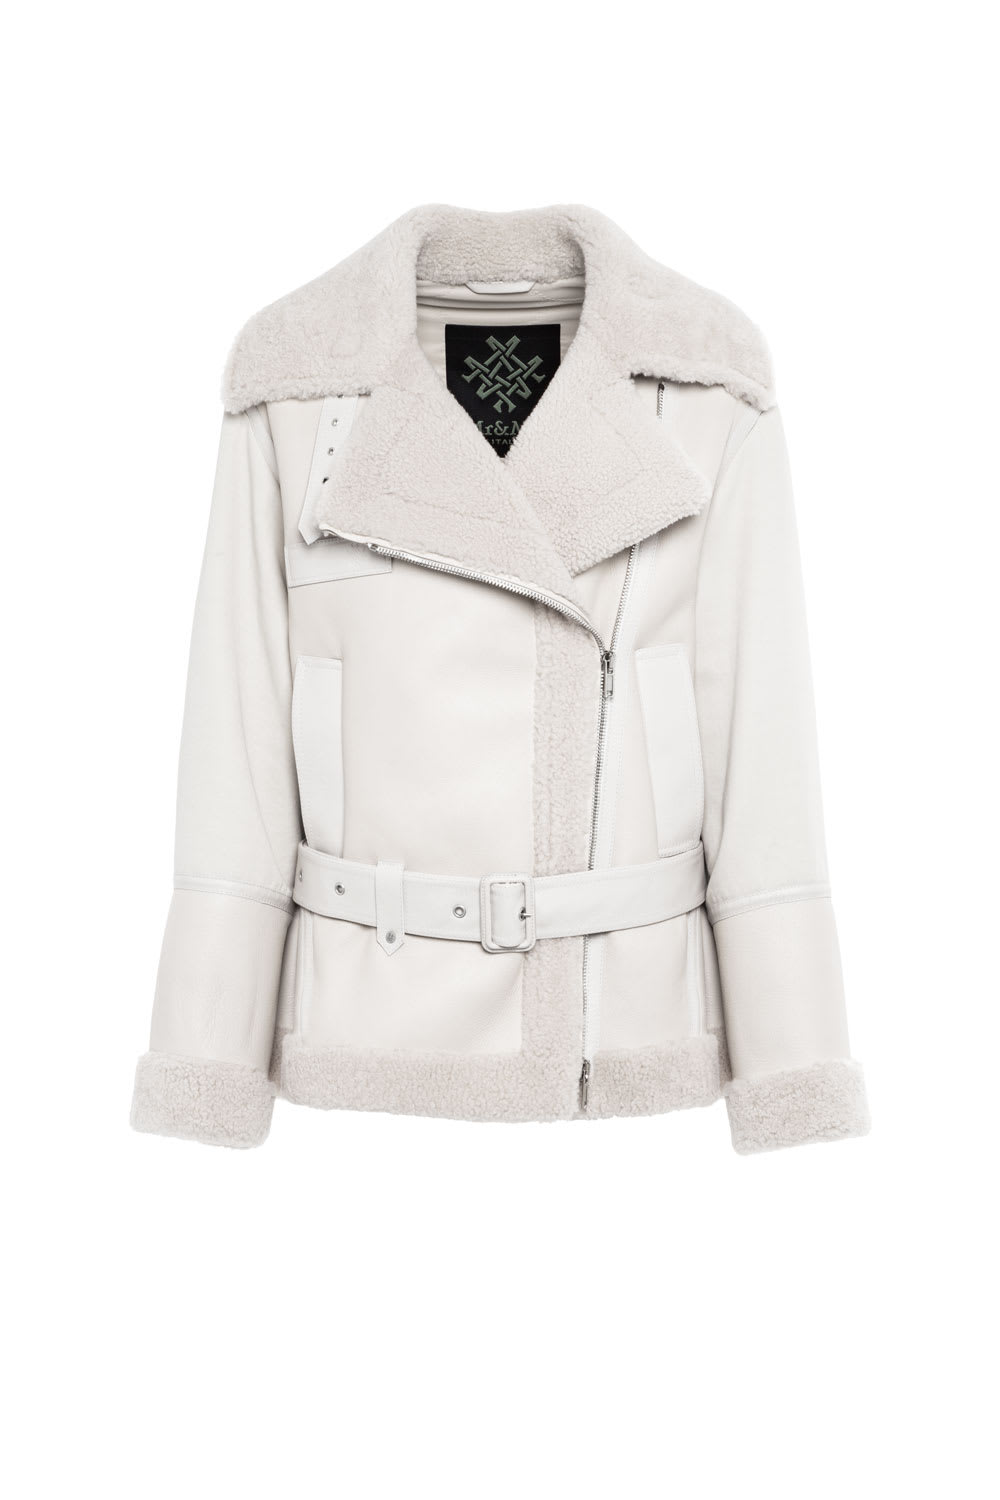 Mr & Mrs Italy Leathers ELIZABETH SULCERS CAPSULE COTTON DRILL, METAL-FREE SHEARLING AND LEATHER BIKER JACKET FOR WOMAN